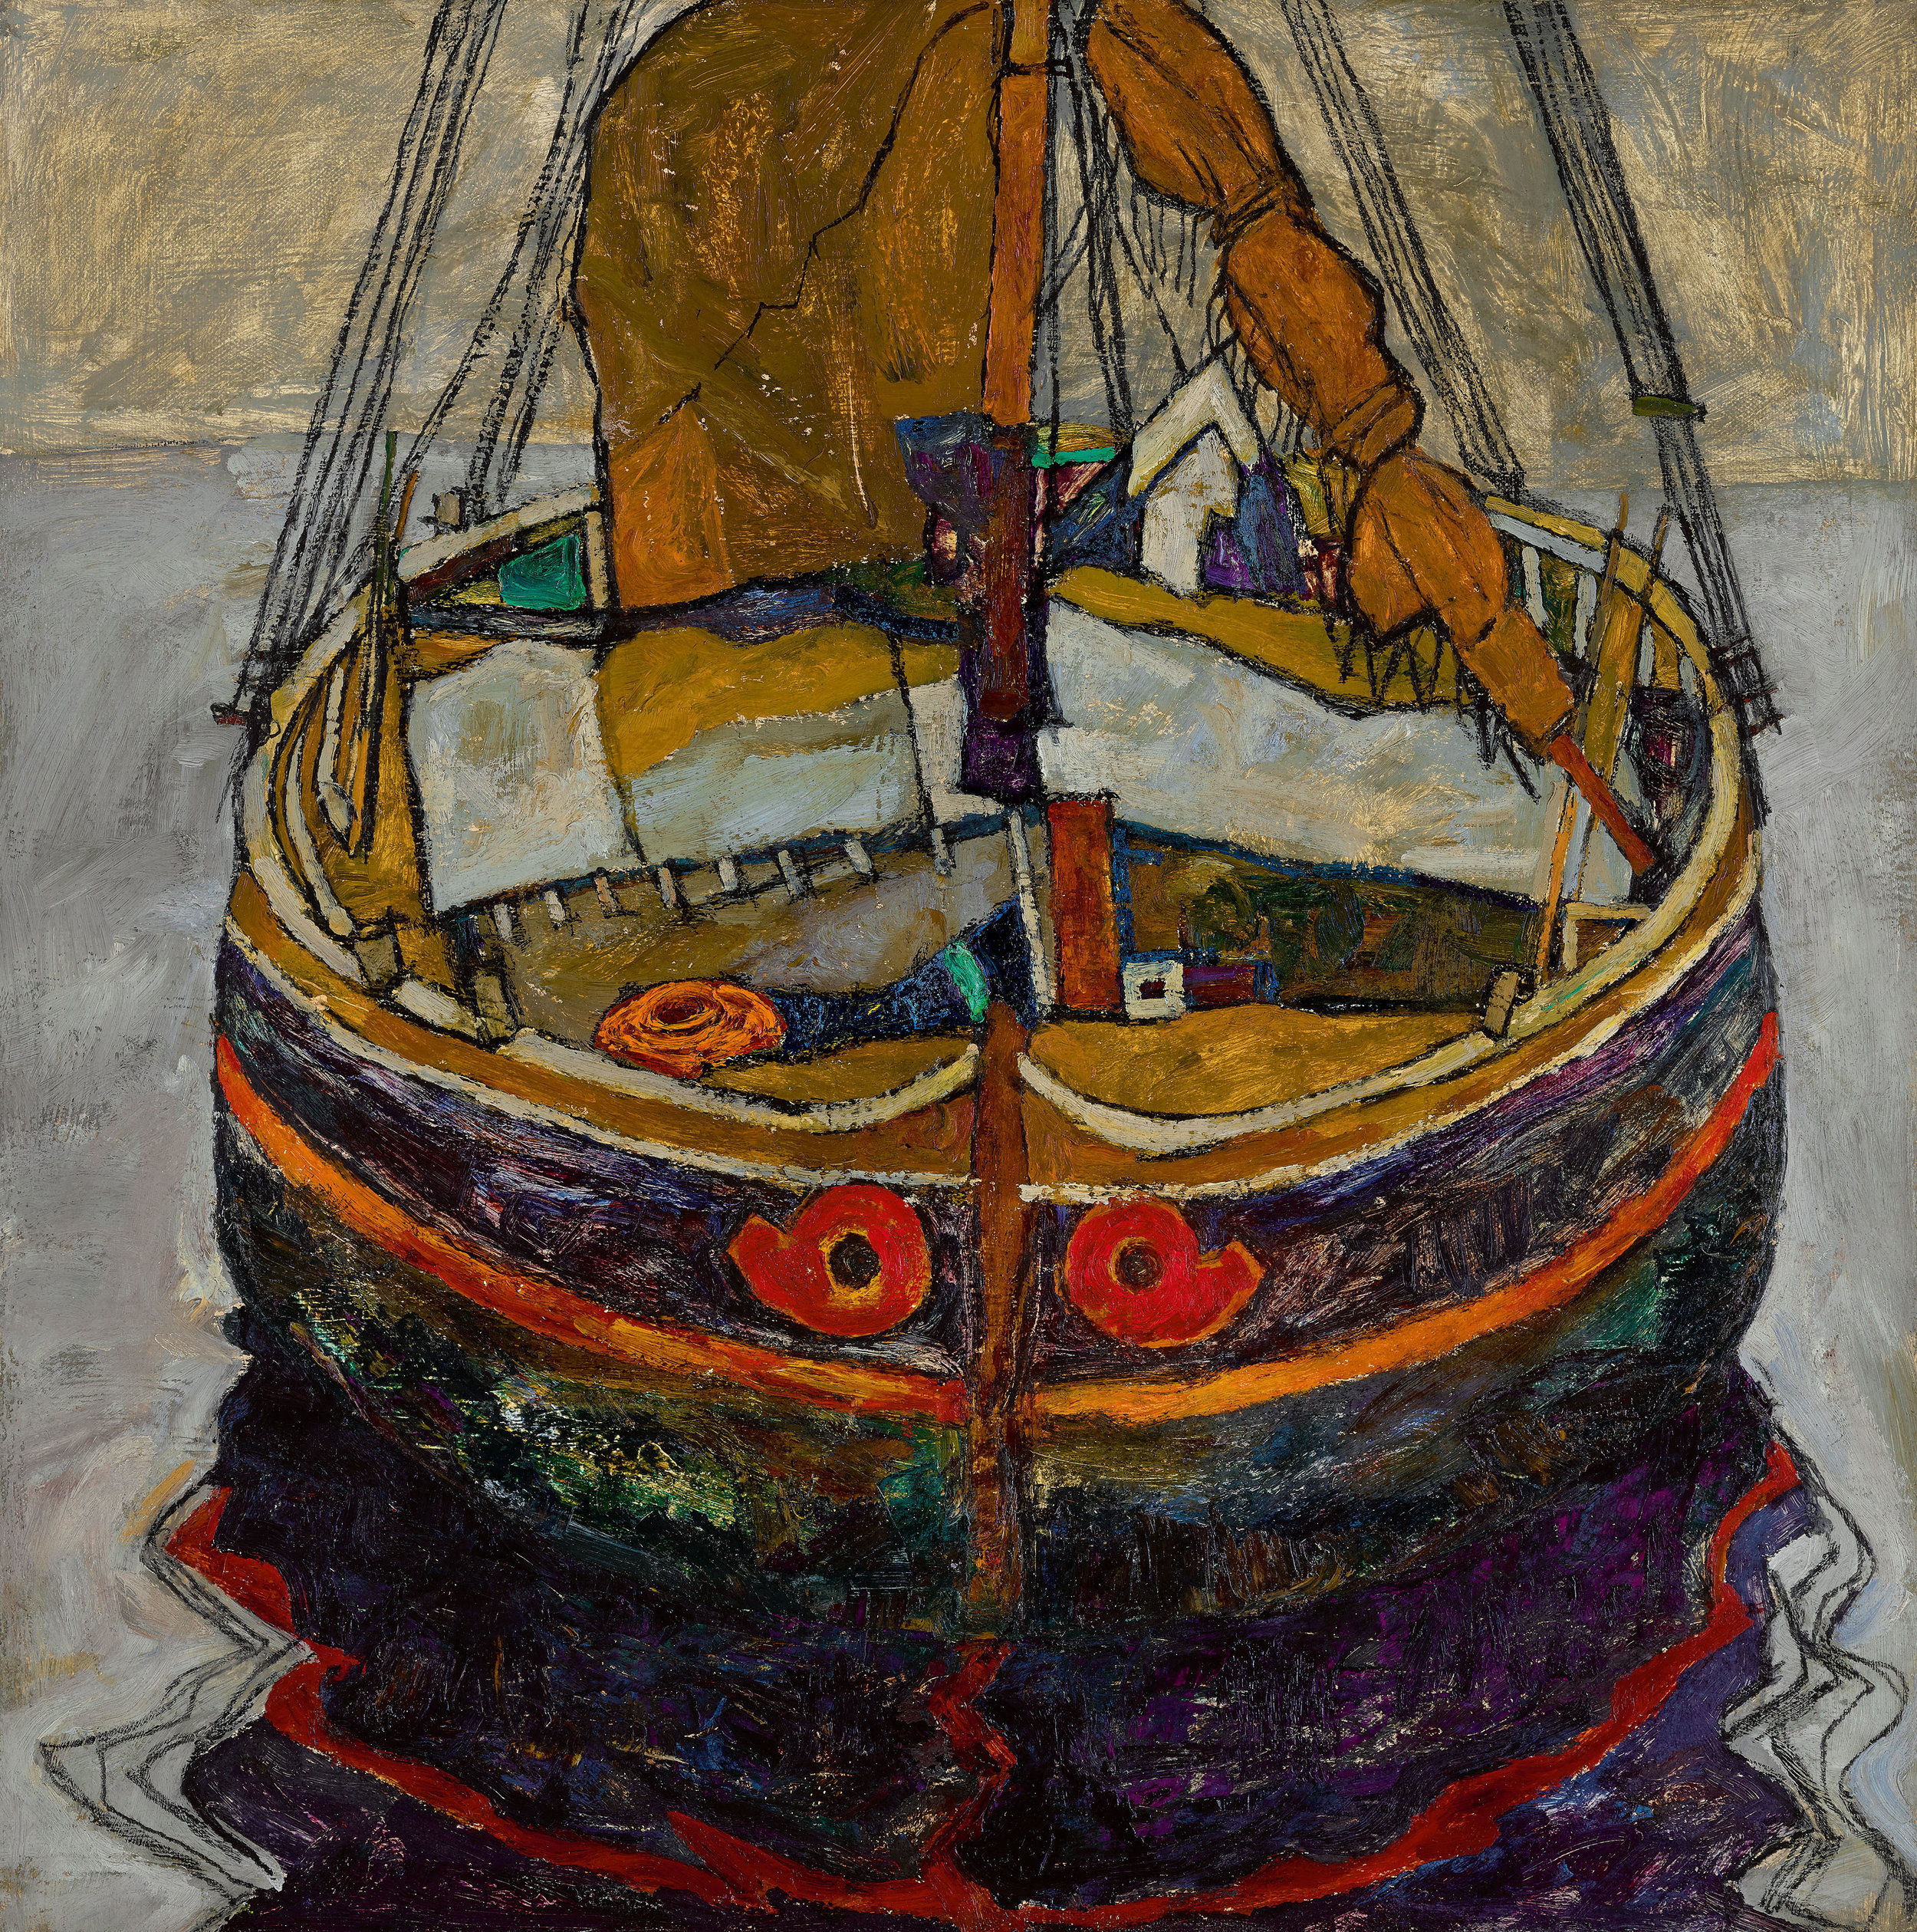 Lot 9 Egon Schiele, Triestiner Fischerboot (Trieste Fishing Boat), oil and pencil on canvas, painted in 1912, 75 by 75cm (est. £6,000,000 - 8,000,000)